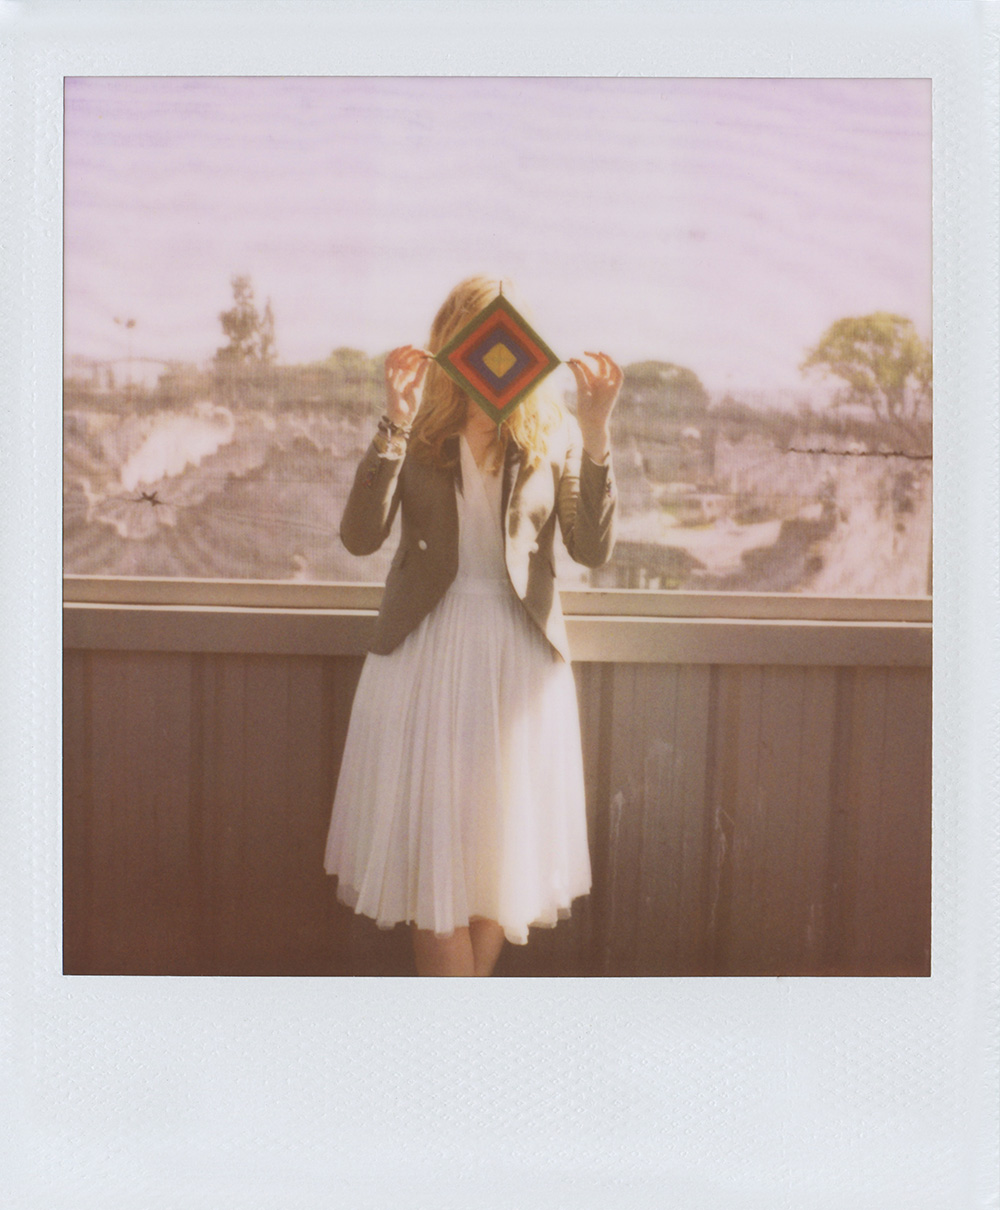 band-of-outsiders-greta-gerwig-polaroids-04